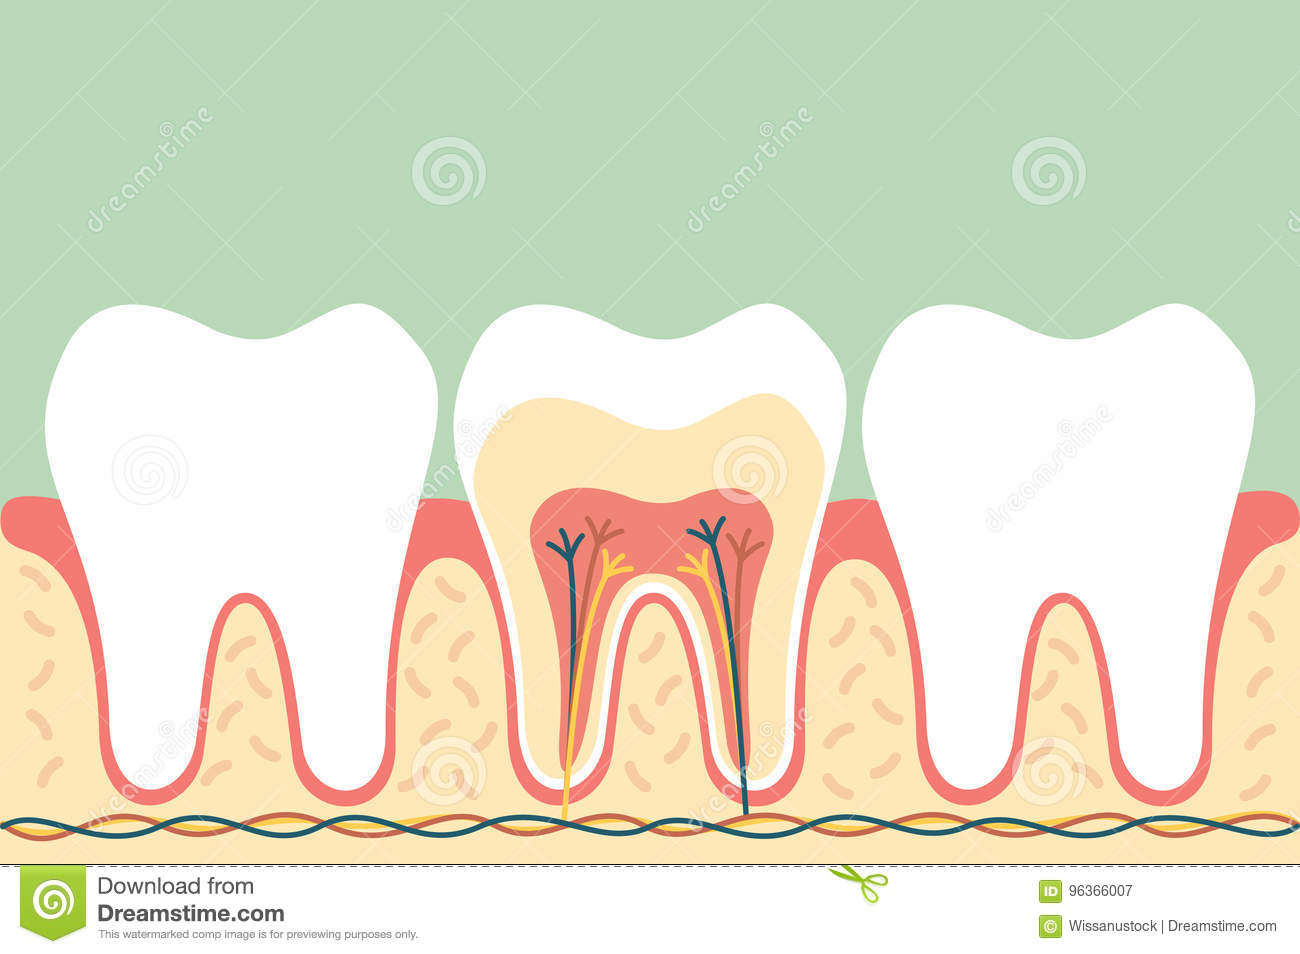 Healthy tooth anatomy stock illustration. Illustration of character ...